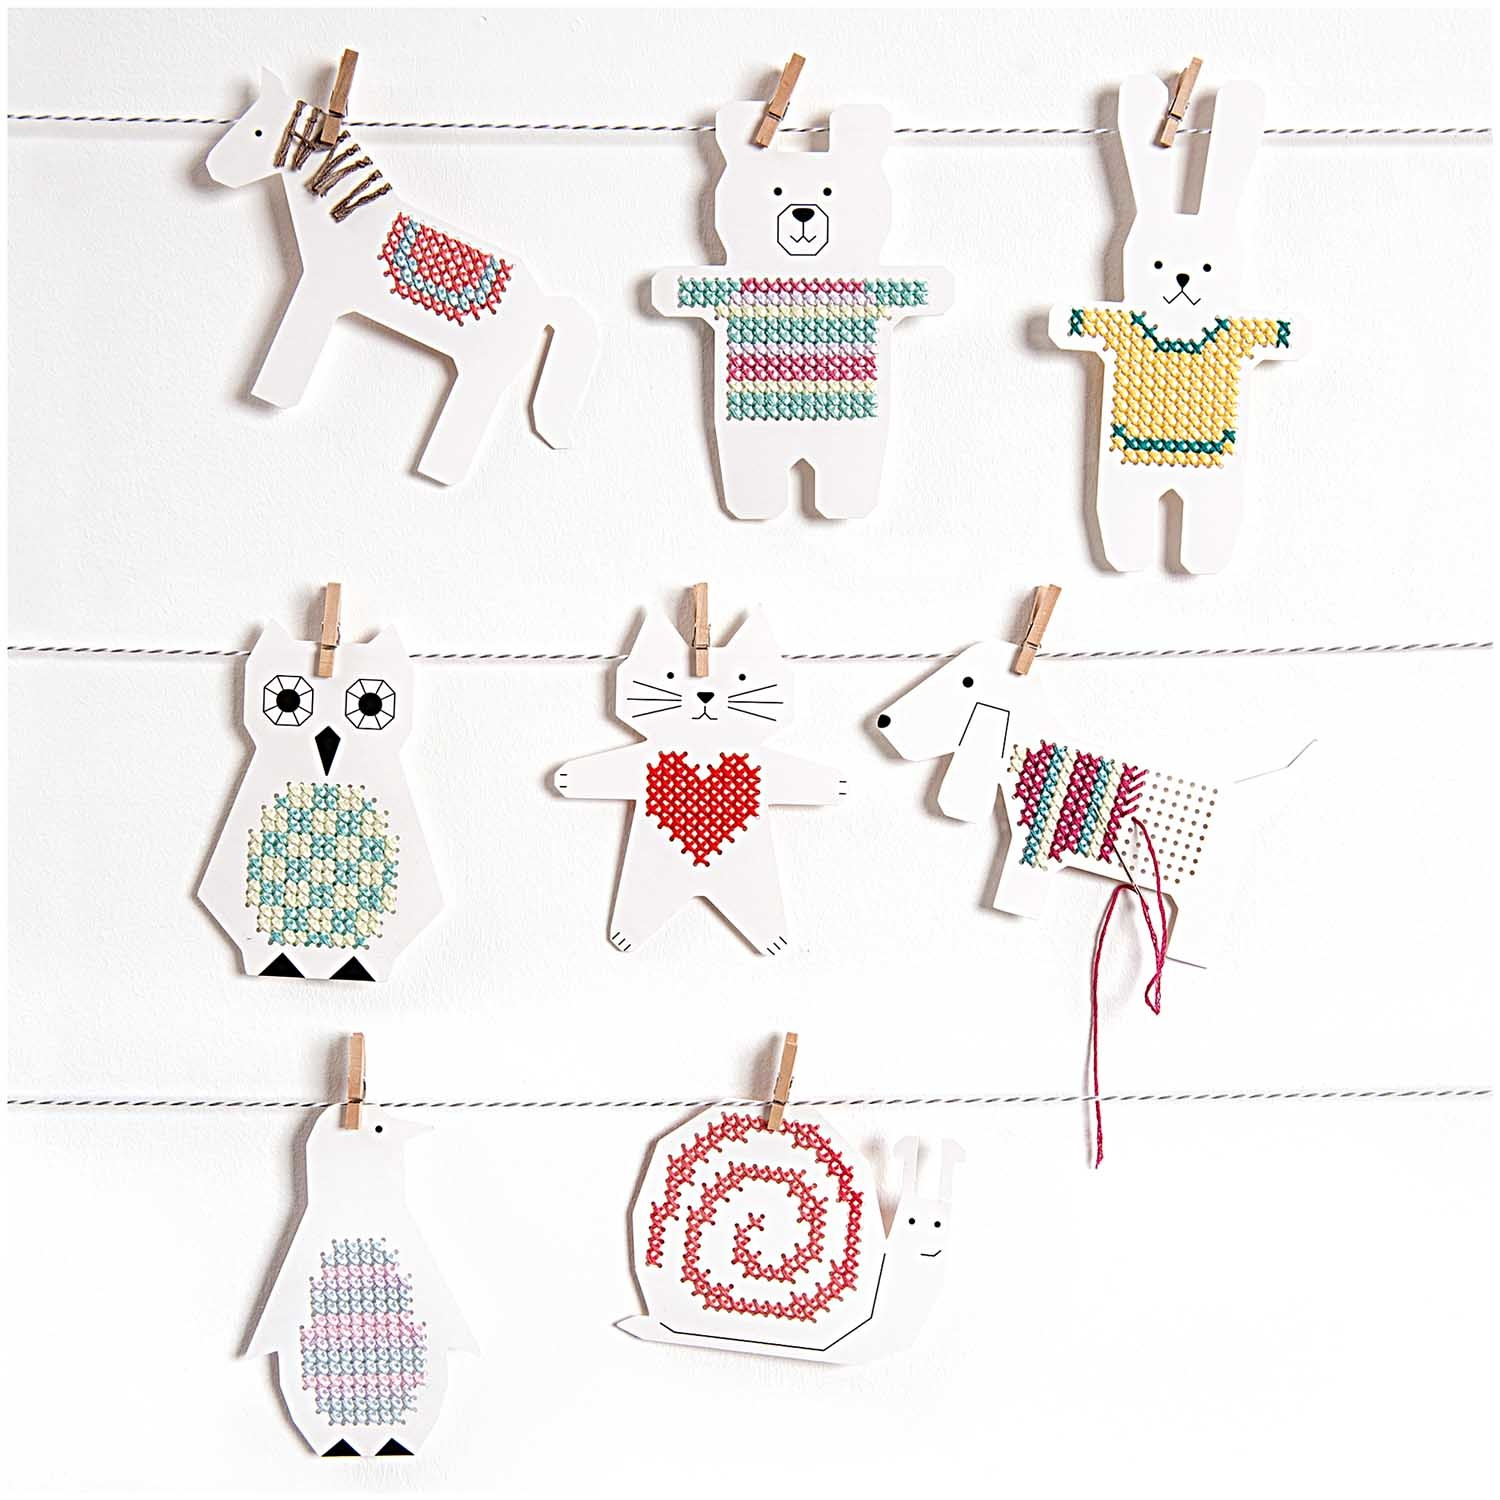 Rico NAY EMBROIDERY BOARD, PENGUIN/OWL 8 PCS, 20,5 X 12,5 CM